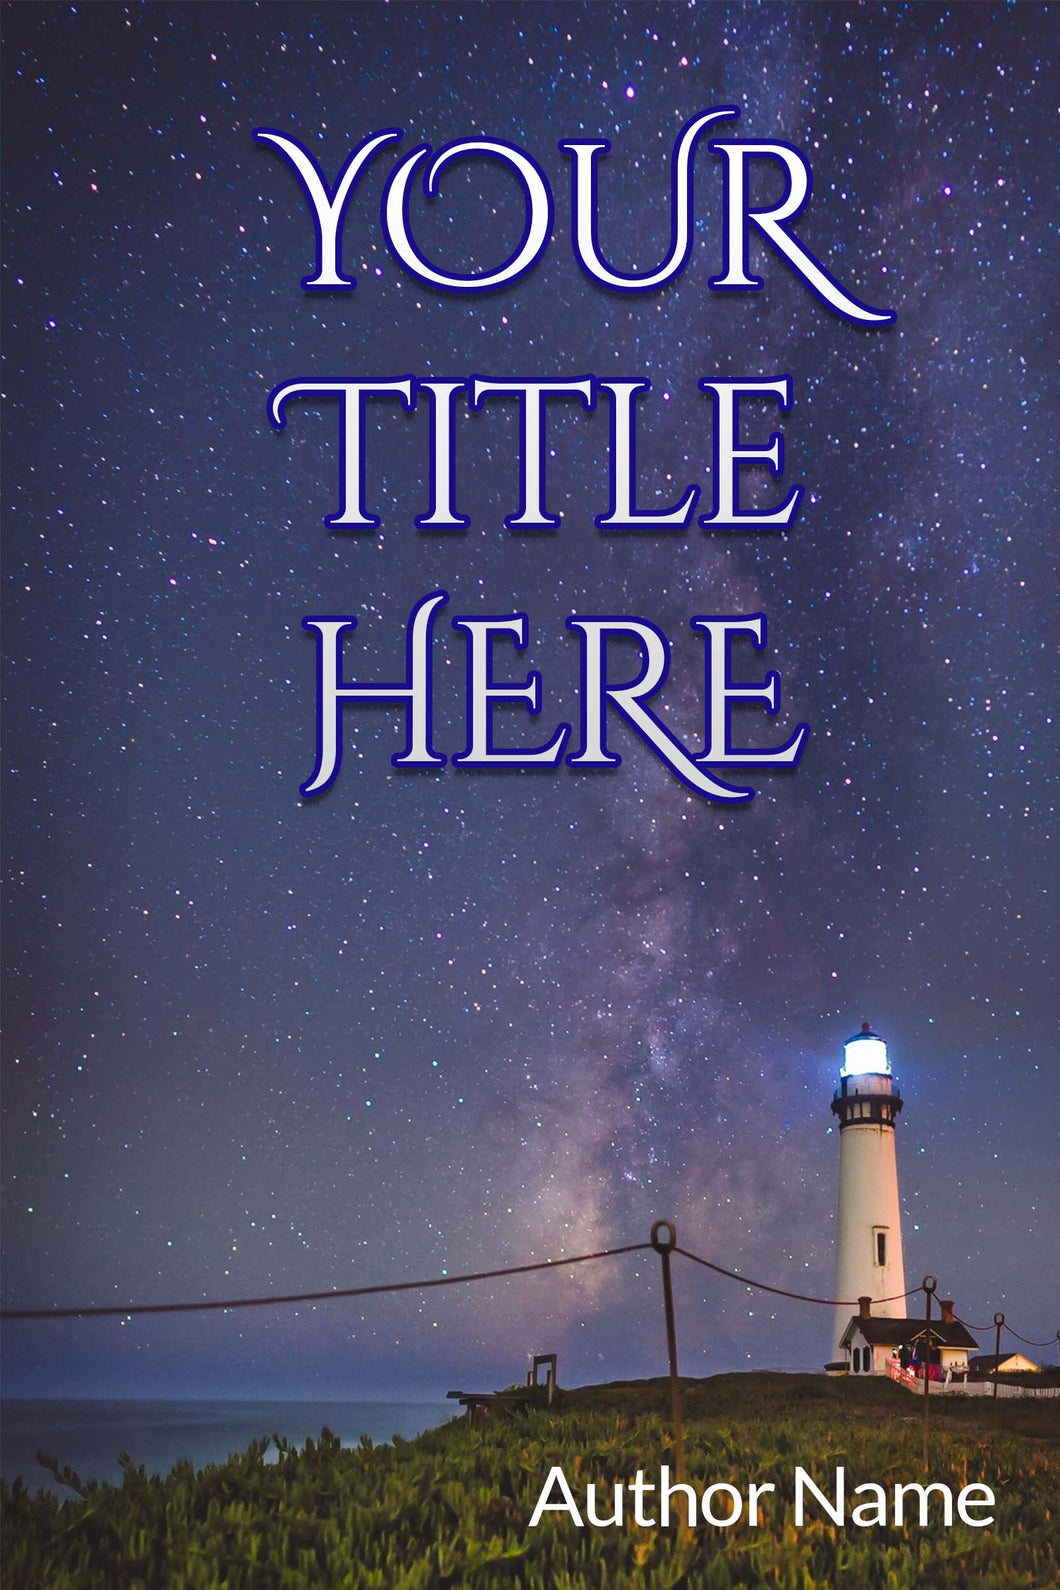 Premade book cover featuring a lighthouse at night against a starry sky. Classic font title and small author name in lower right corner.